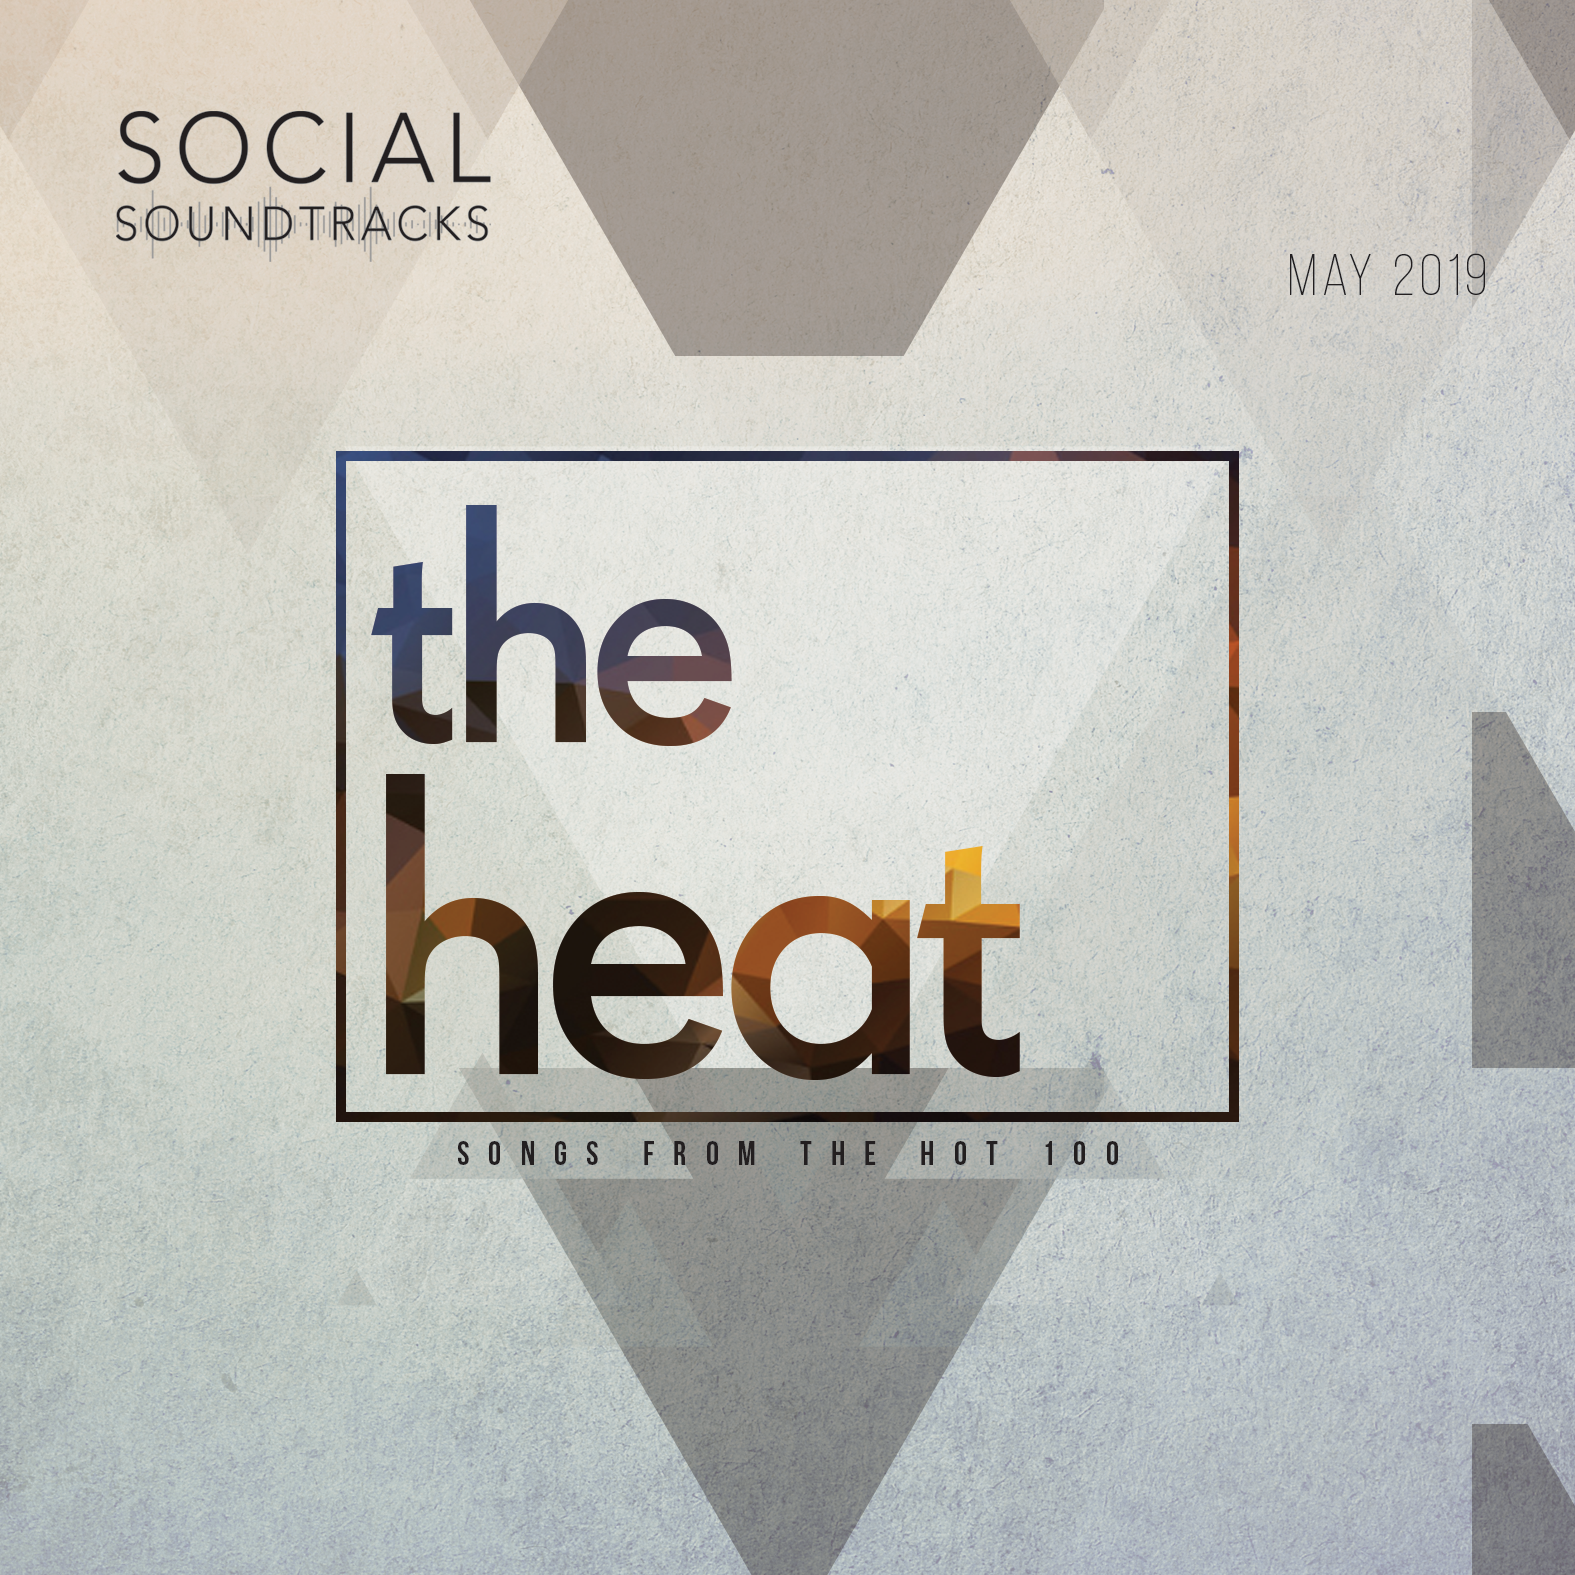 The-Heat-Cover.png